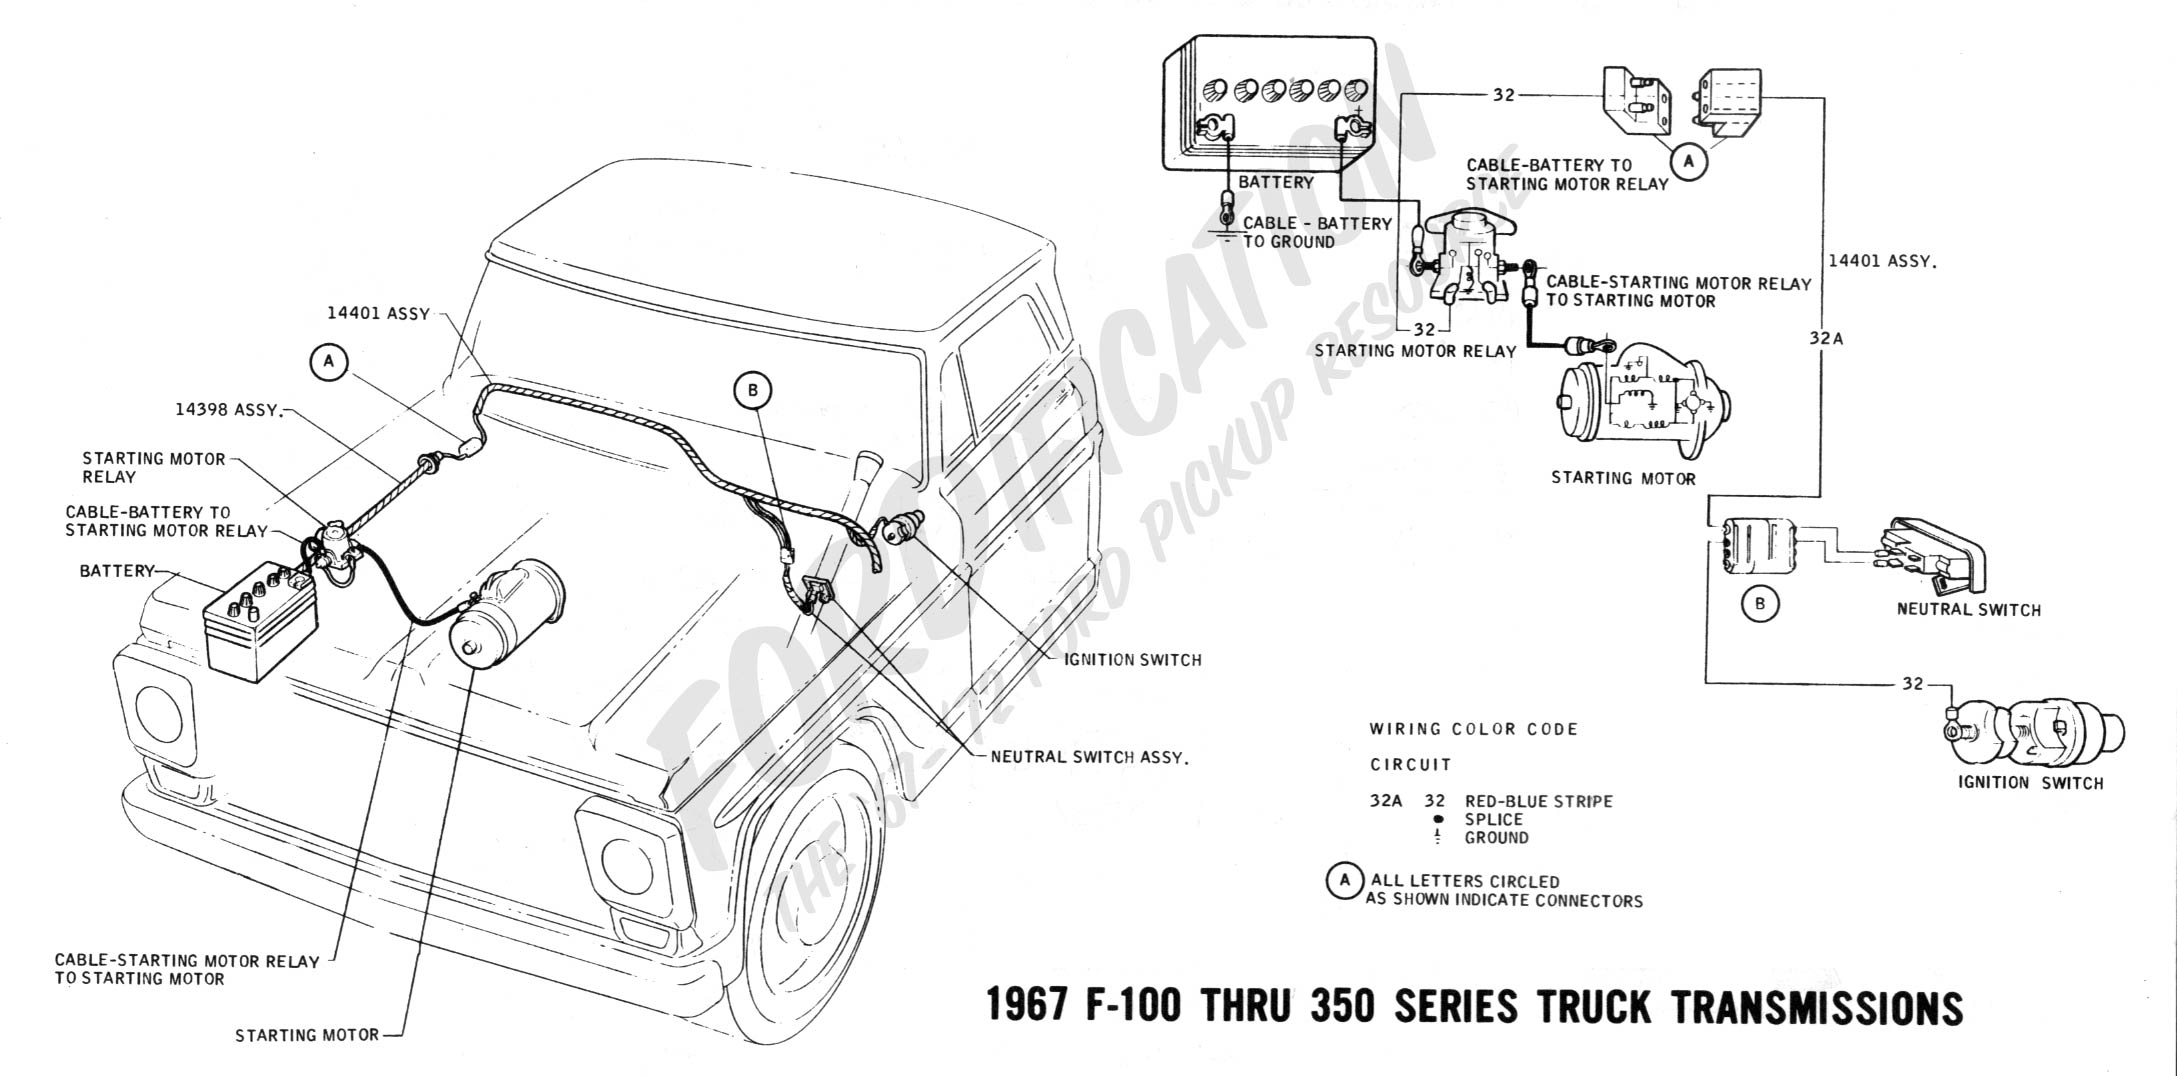 Start Wiring Diagram In A1972 F100 Ford Reinvent Your 1953 Chevy Truck Schematics Technical Drawings And Section H Rh Fordification Com 1965